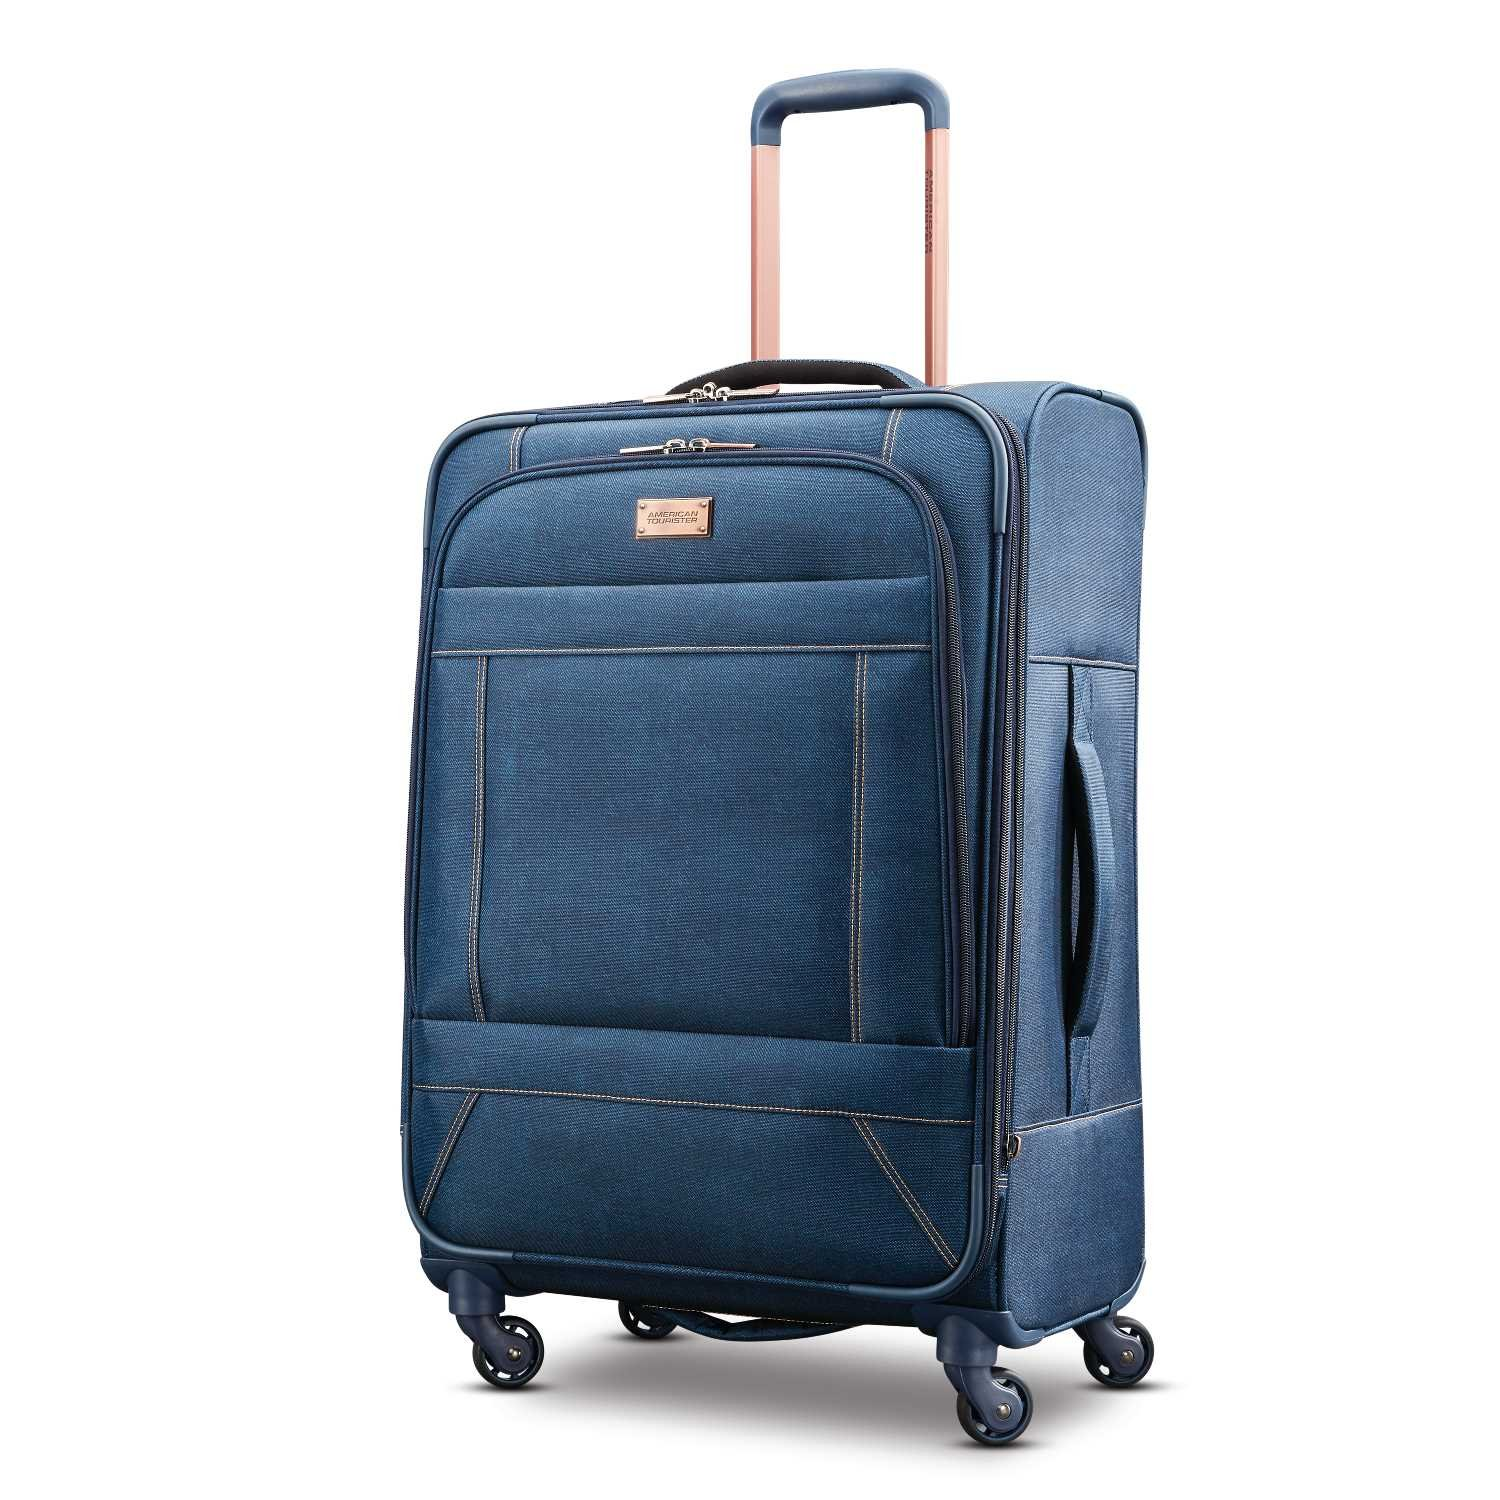 American Tourister Checked-Medium, Blue Denim by American Tourister